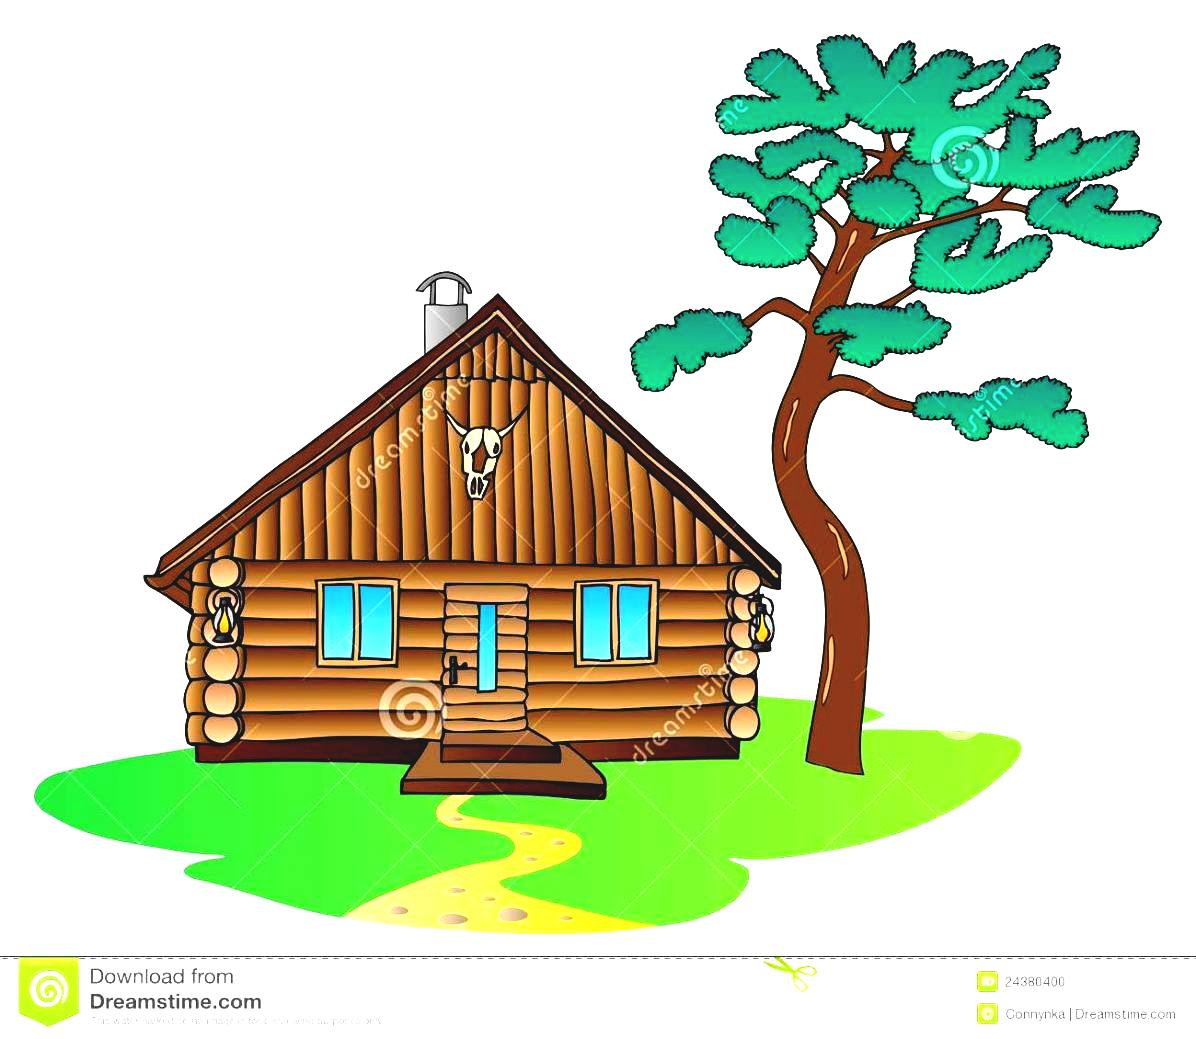 Pine Tree clipart real Clip Free Cabin Clip Images